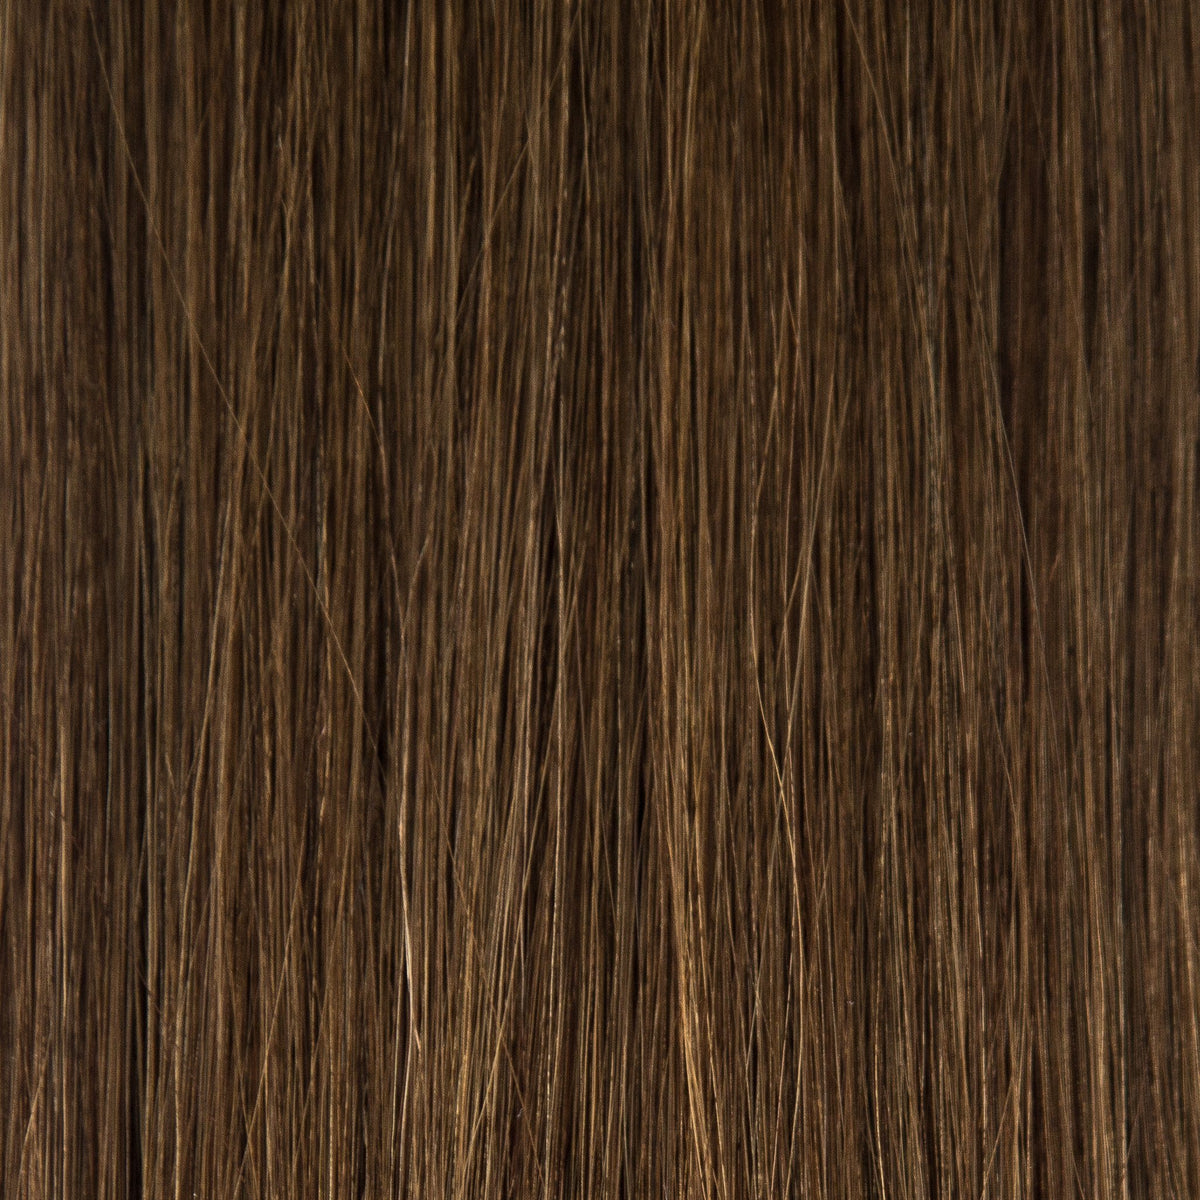 I-Tip - Laced Hair I-Tip Extensions #5 (Caramel)